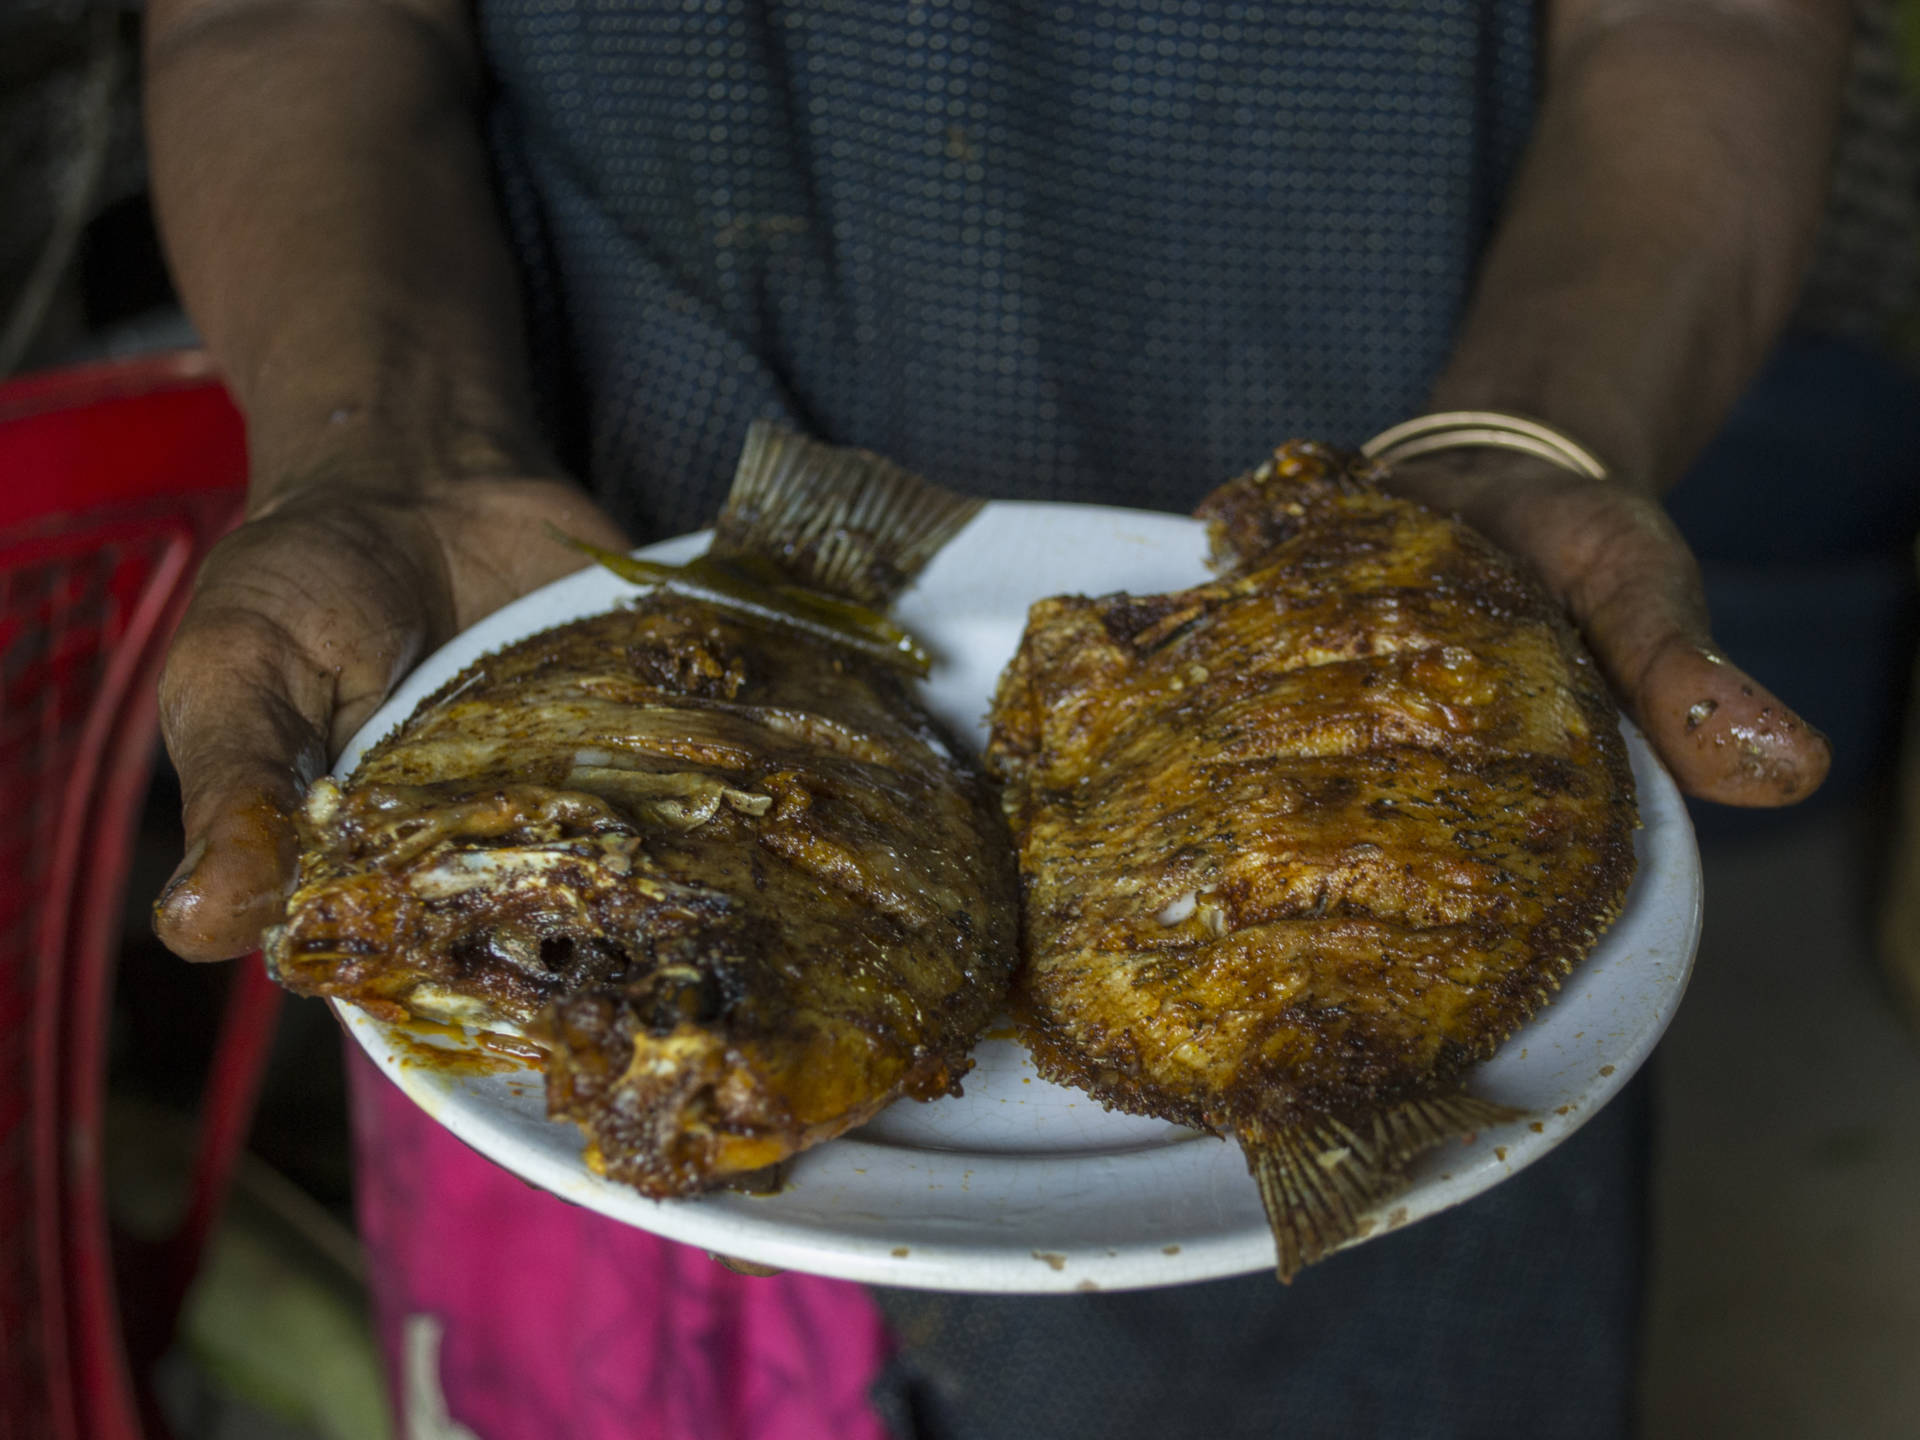 At Mullapanthal, fresh karimeen from the backwaters is marinated and fried to order.